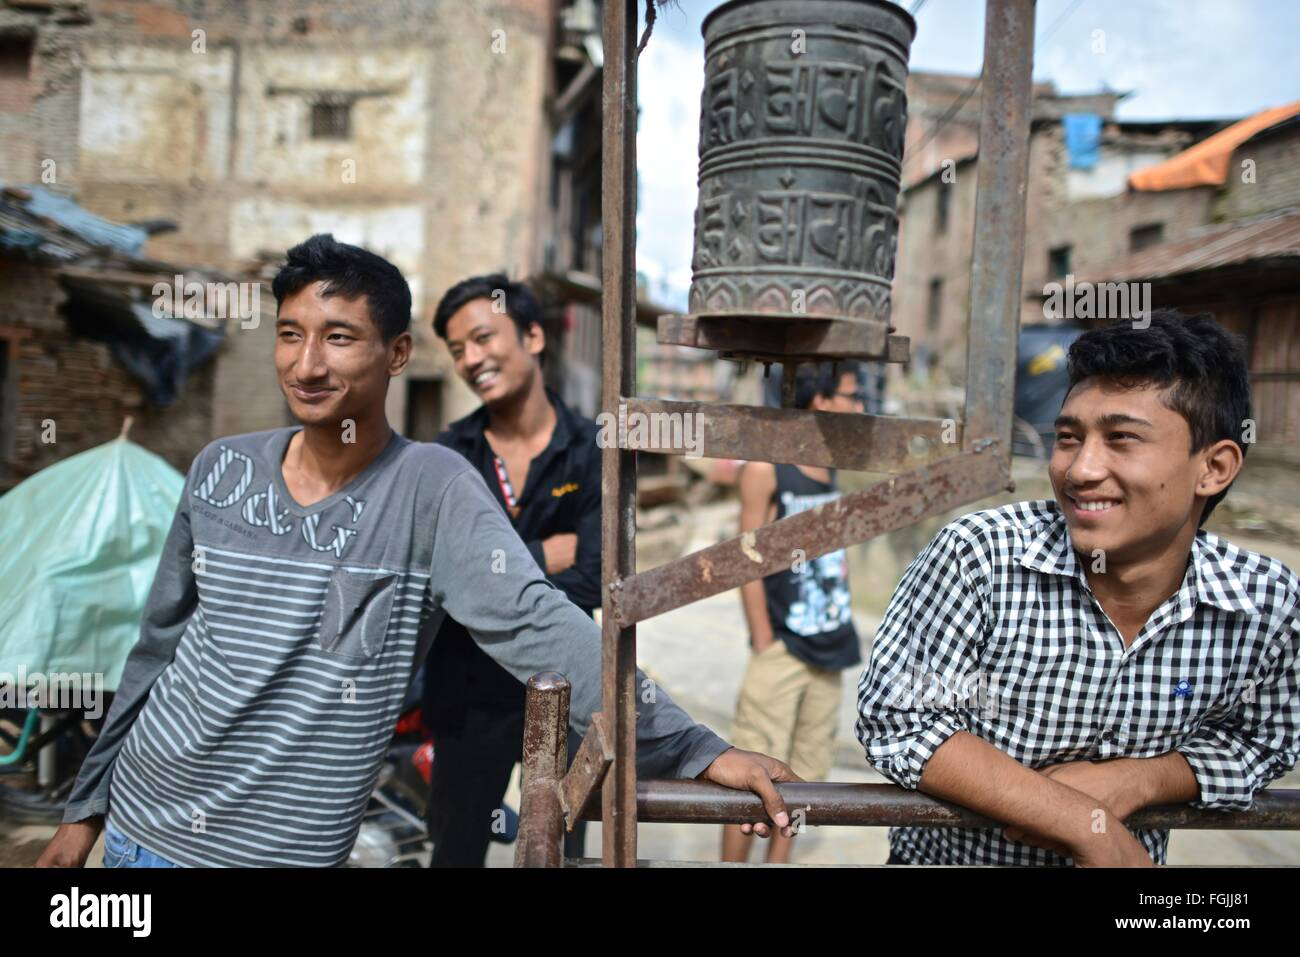 Young Nepali man smiling - Stock Image